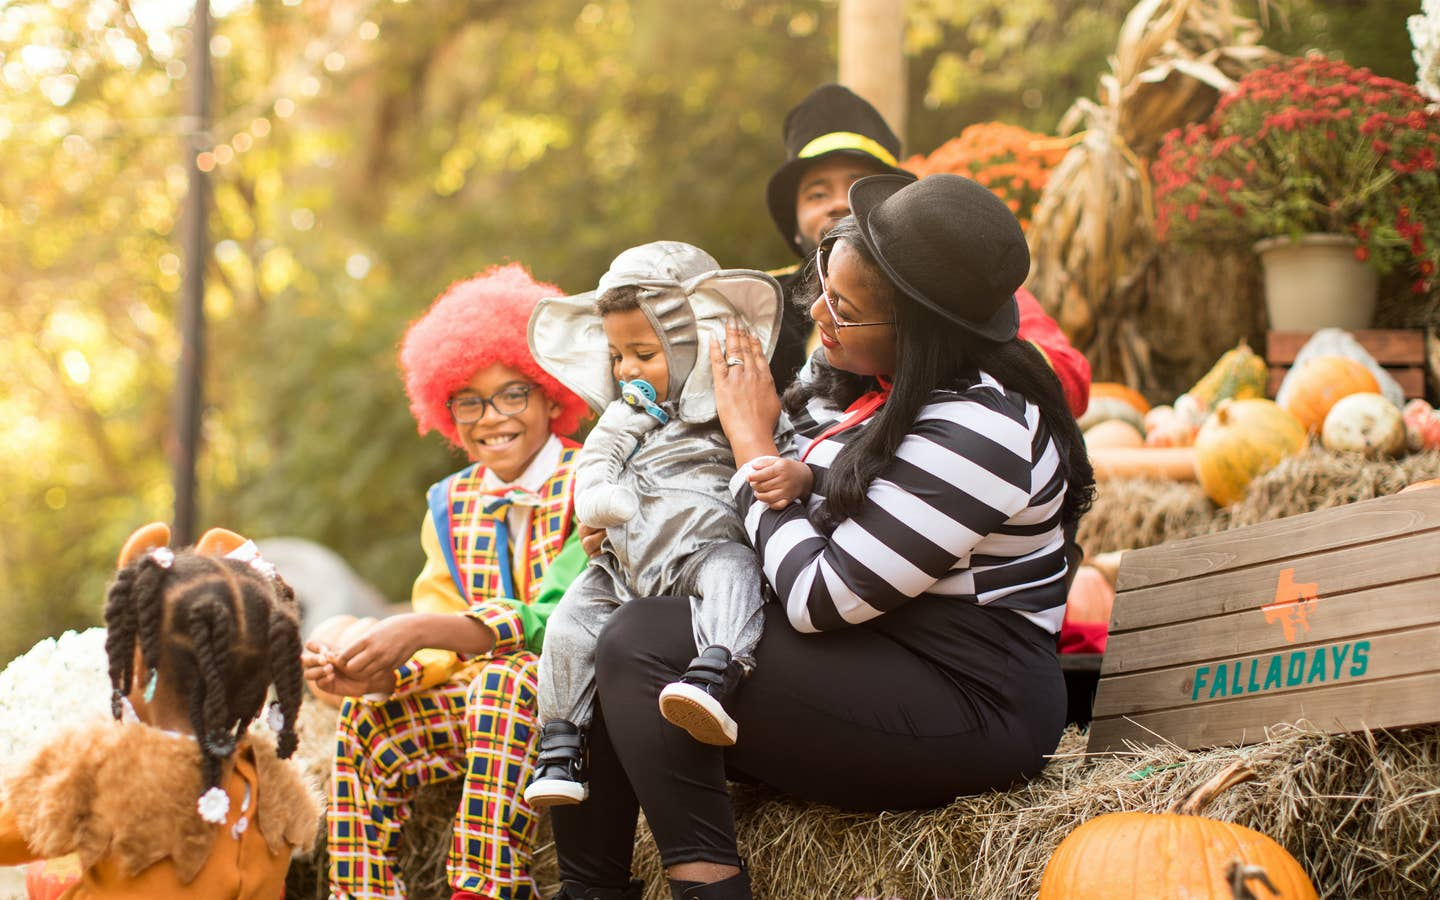 Family in costumes sitting on a pumpkin patch at the Villages Resort in Flint, TX.